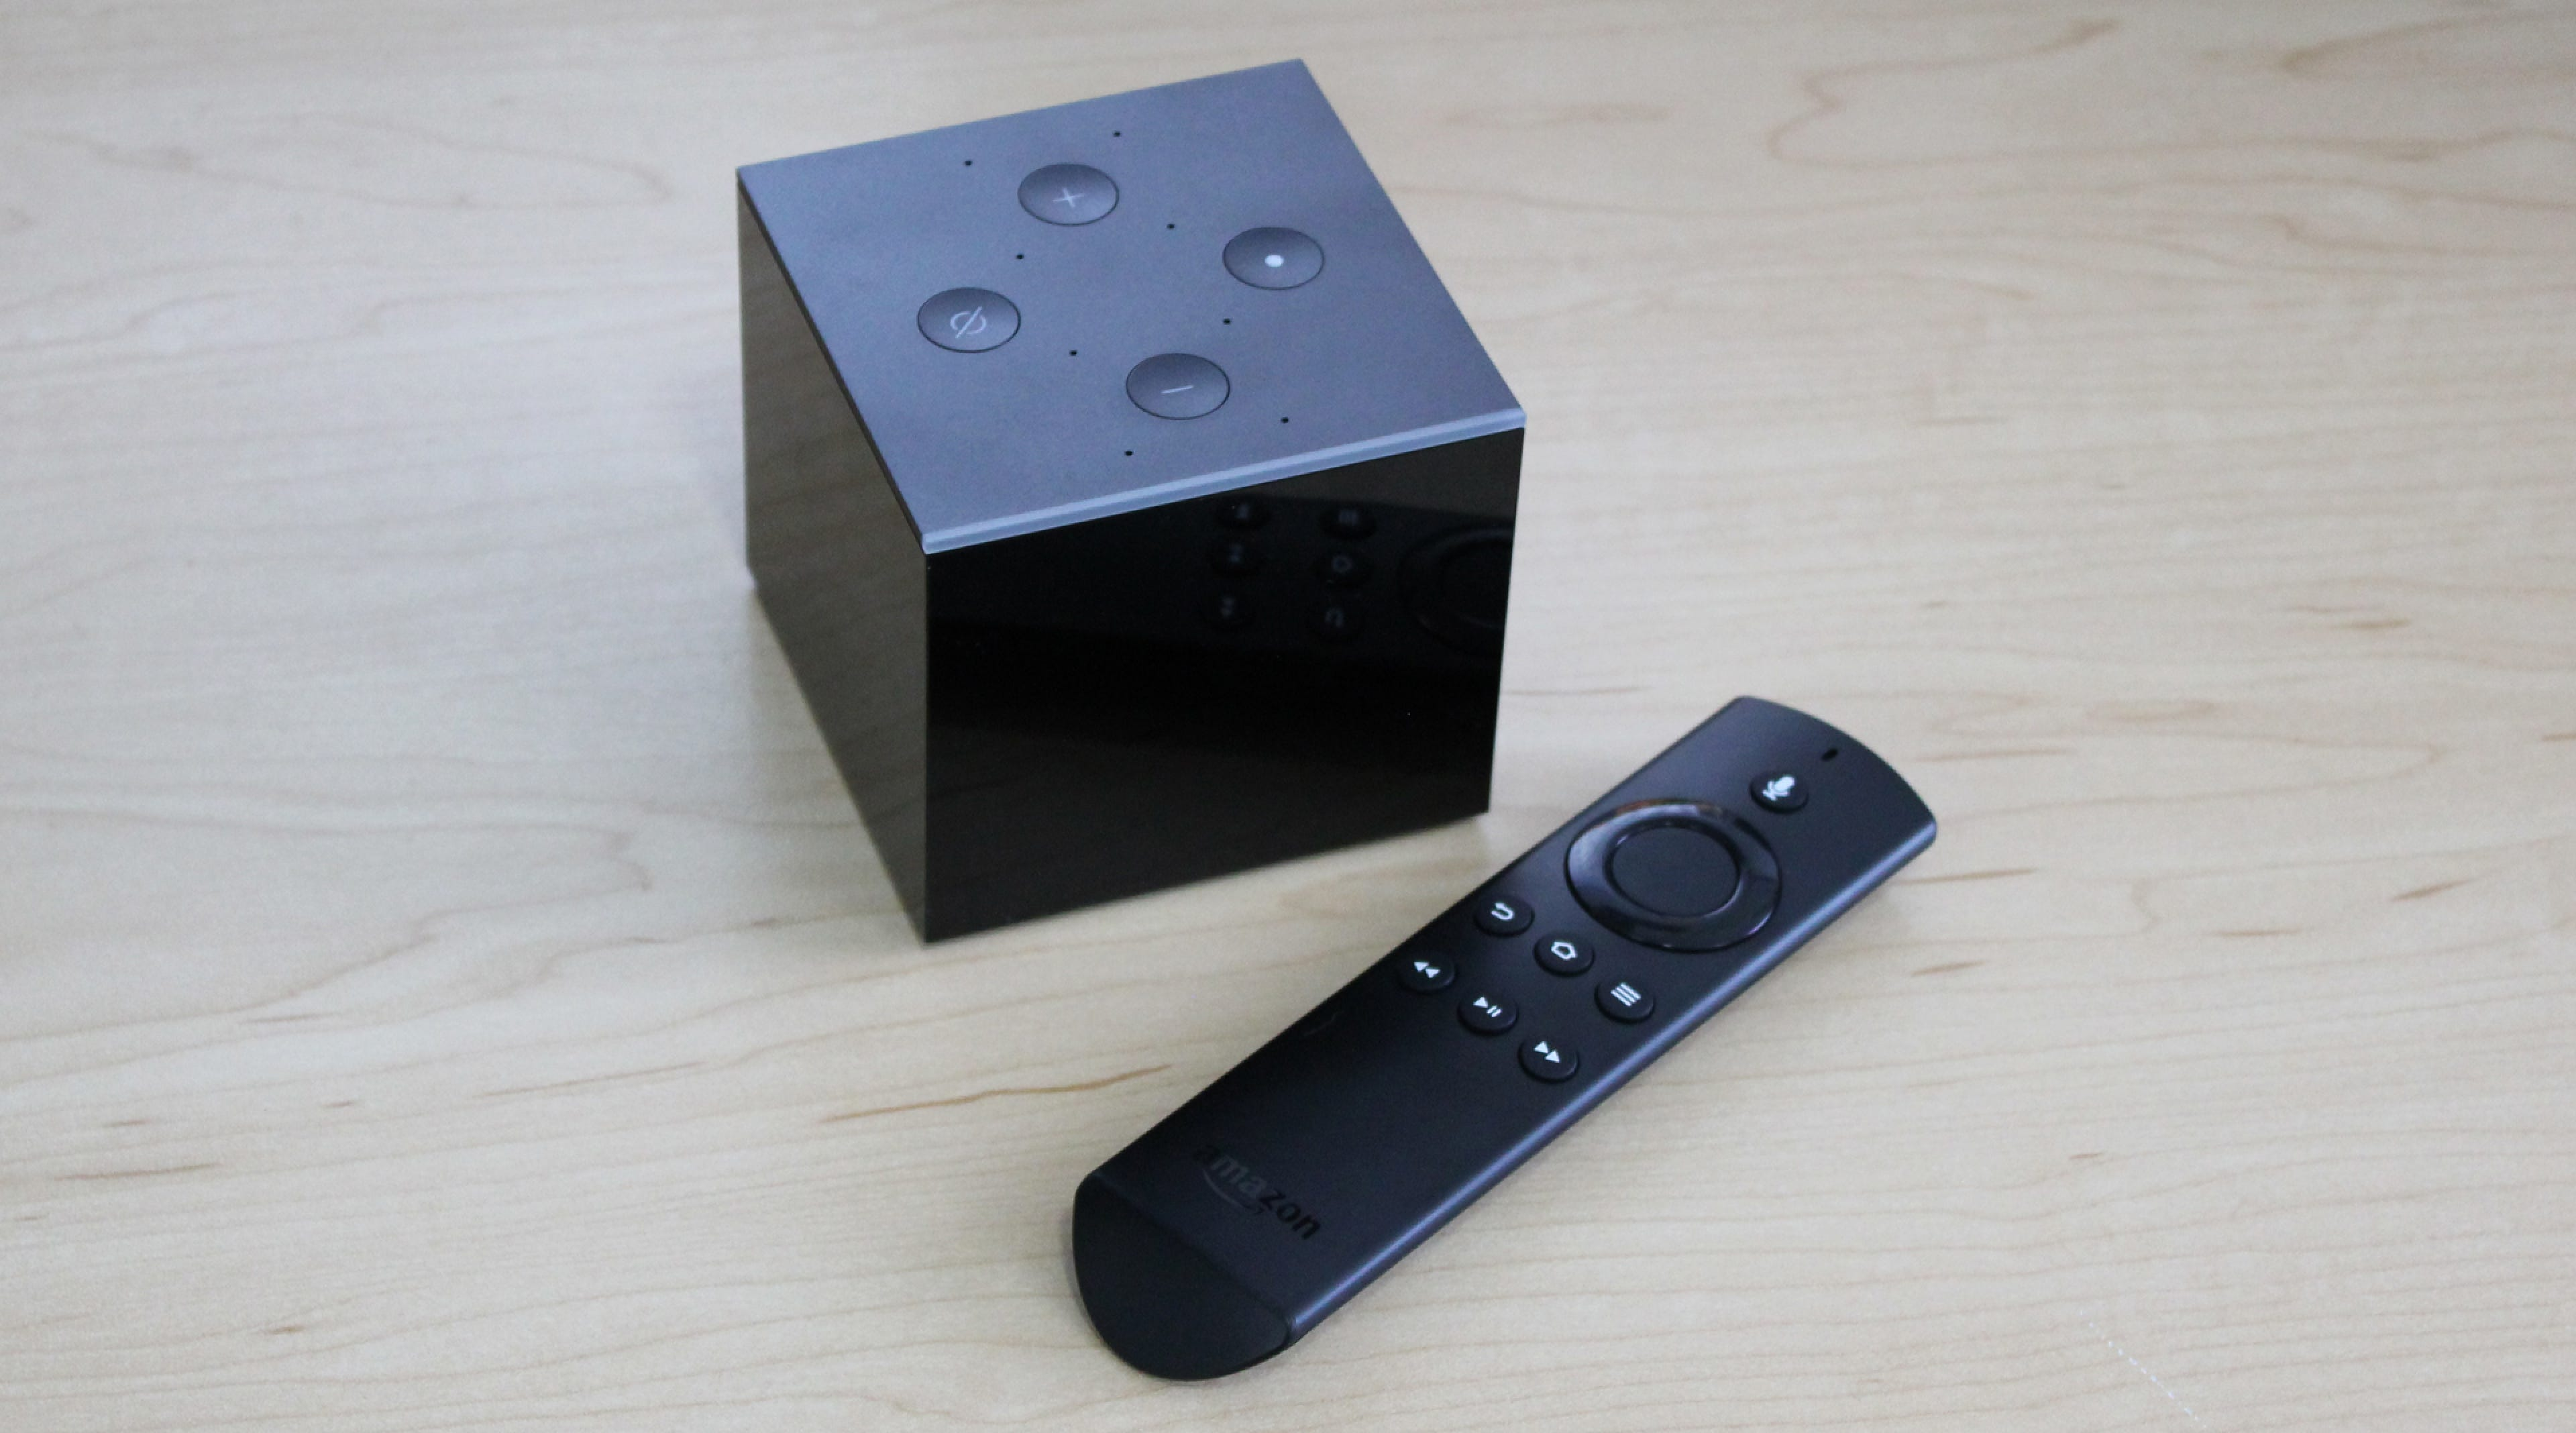 Amazon Fire TV Cube Review: The Universal Remote You've Been Waiting